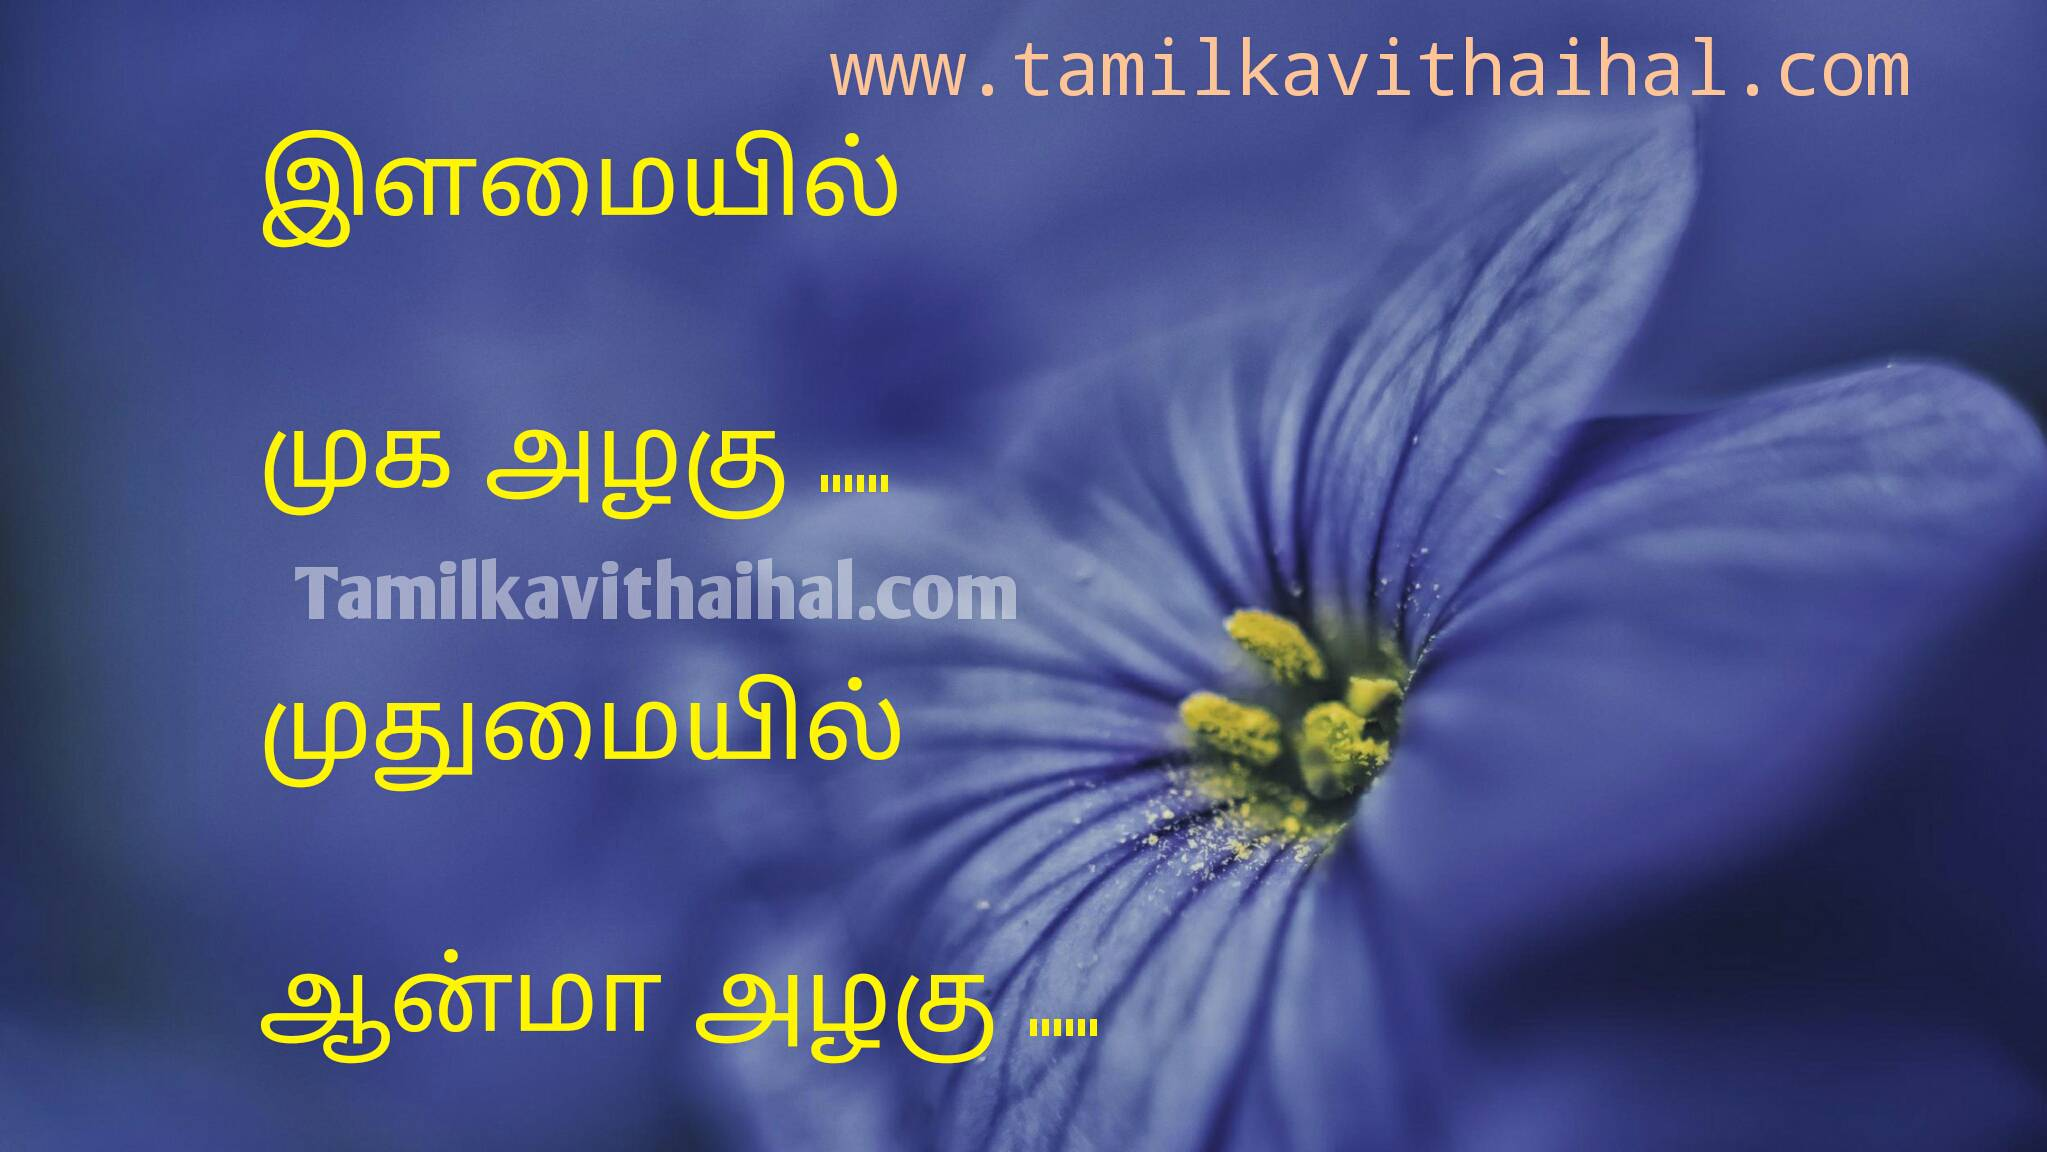 Best quotes for older younger people young face beauty soul aanma muthumai ilamai thathuvam whatsapp hd wallpapper